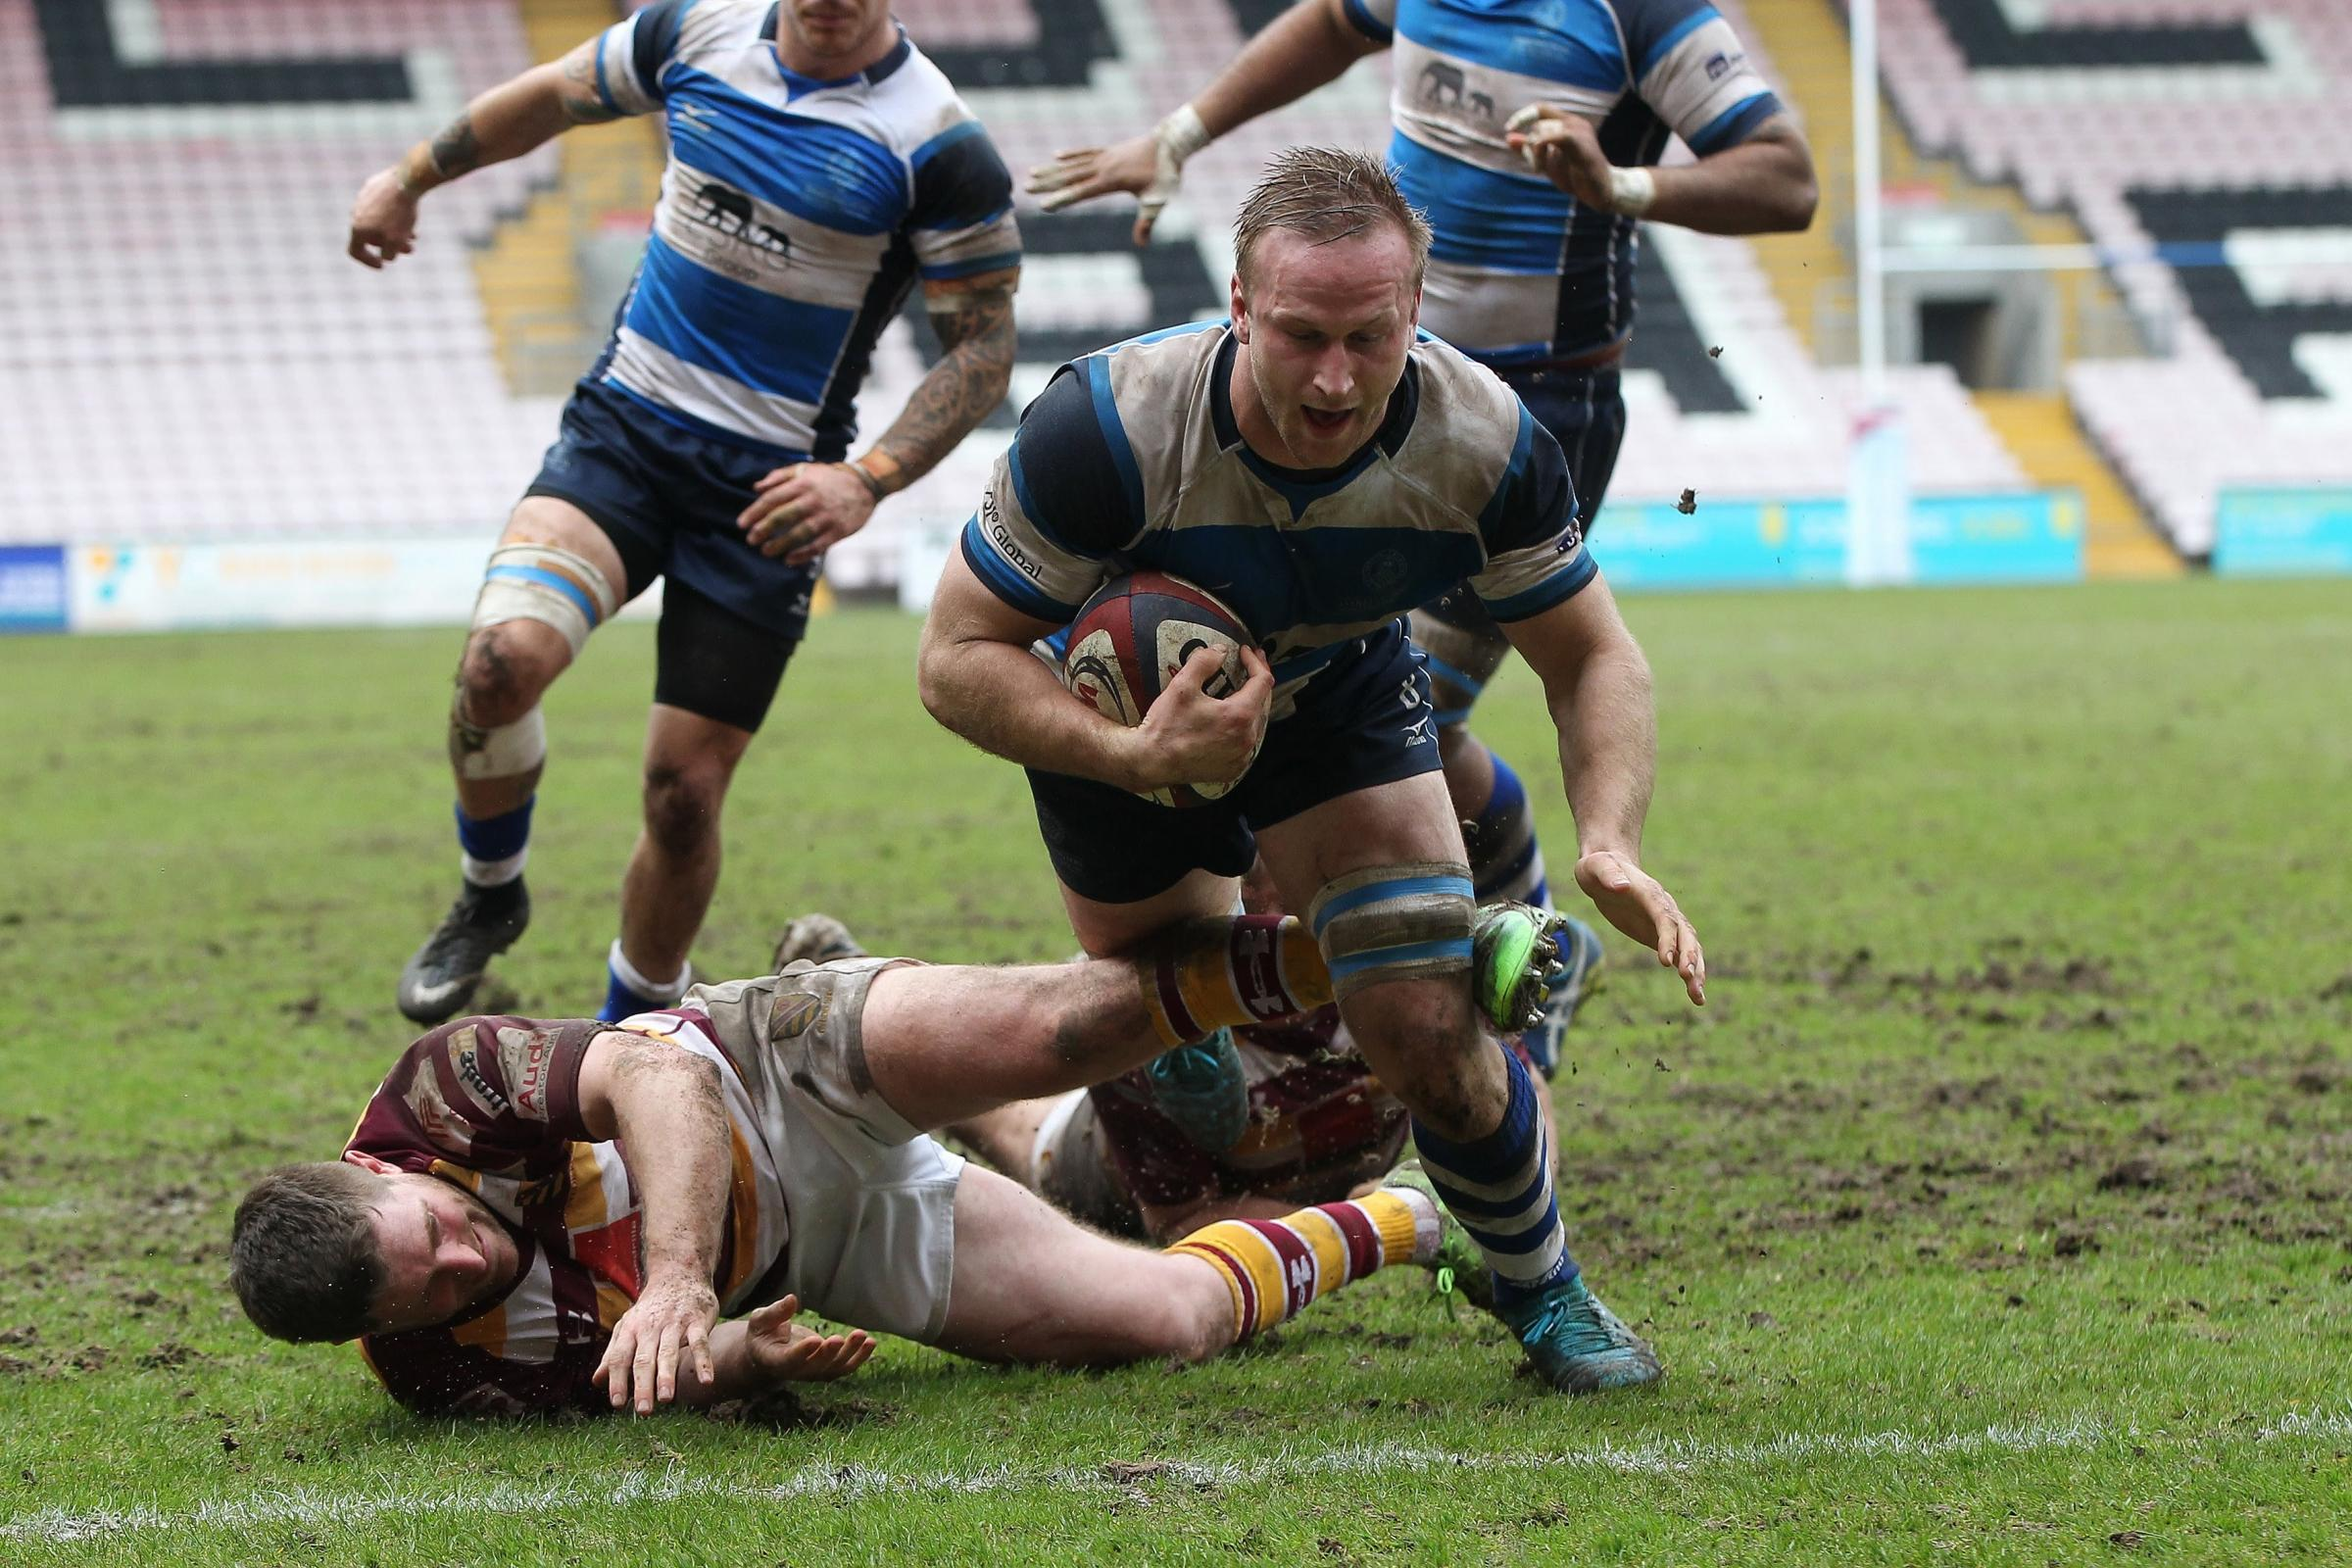 Matt Heaton of Mowden powers hsi way through the Fylde defence to score during the National Division 1 match between Darlington Mowden Park and Fylde Rugby Club. Picture: Mark Fletcher, Shutter Press